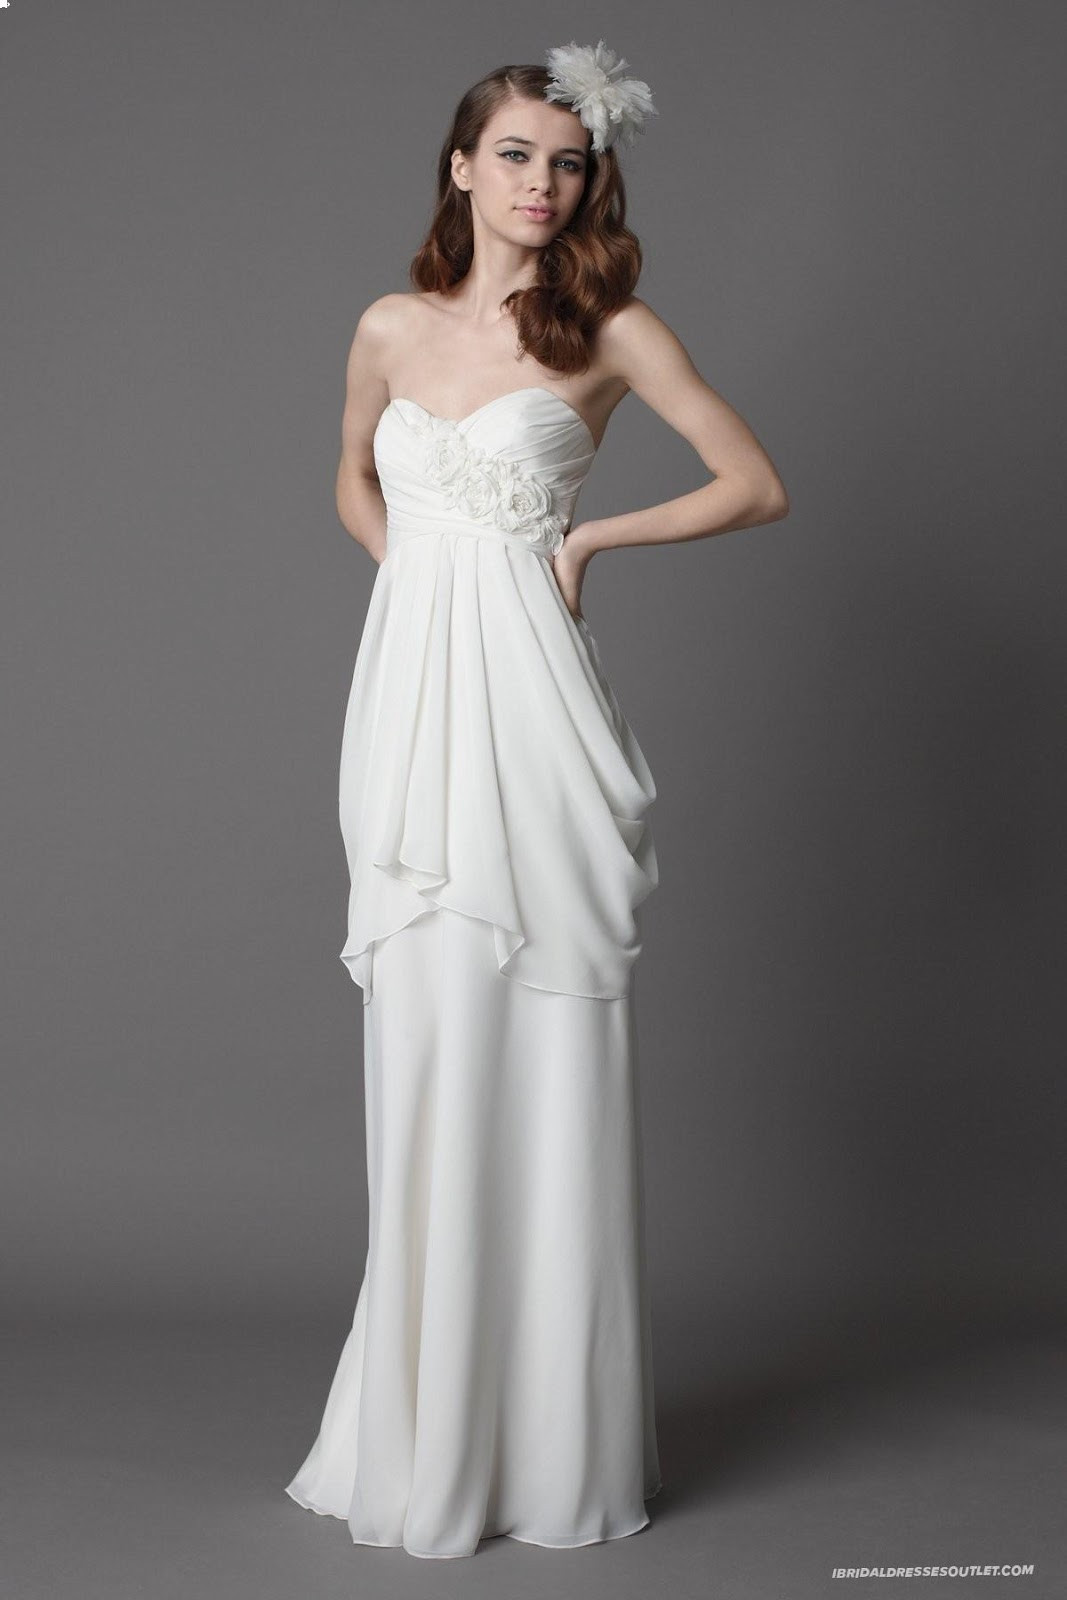 Casual Backyard Weddings  Choose Your Fashion Style Casual Wedding Dresses for